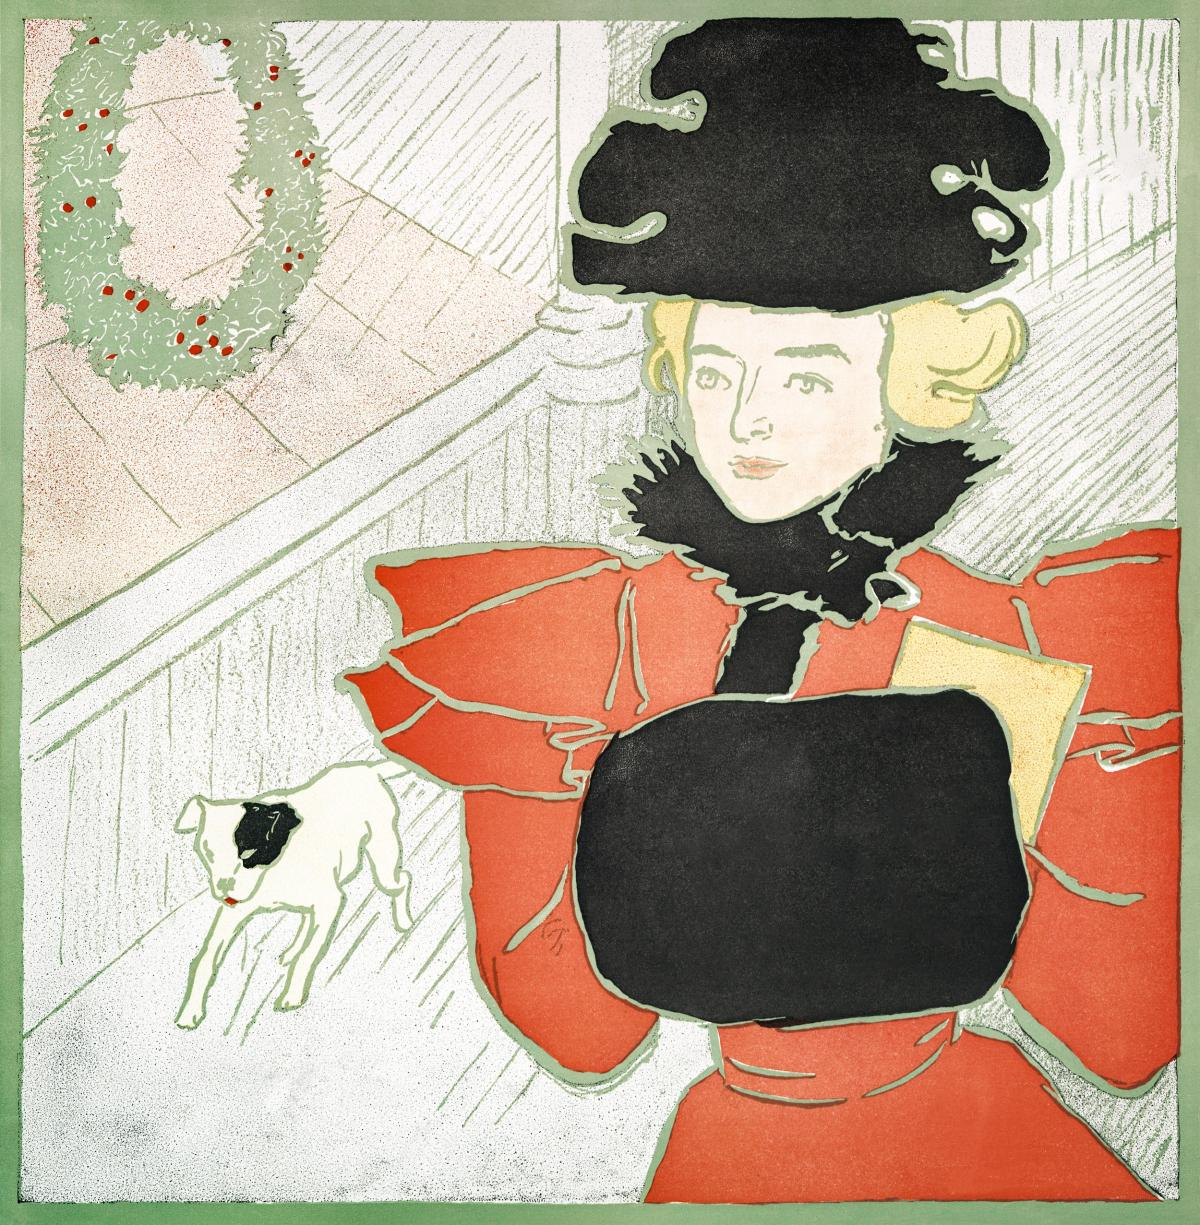 Vintage Christmas Card (ca. 1890–1907) by Edward Penfield. Original from The New York Public Library.